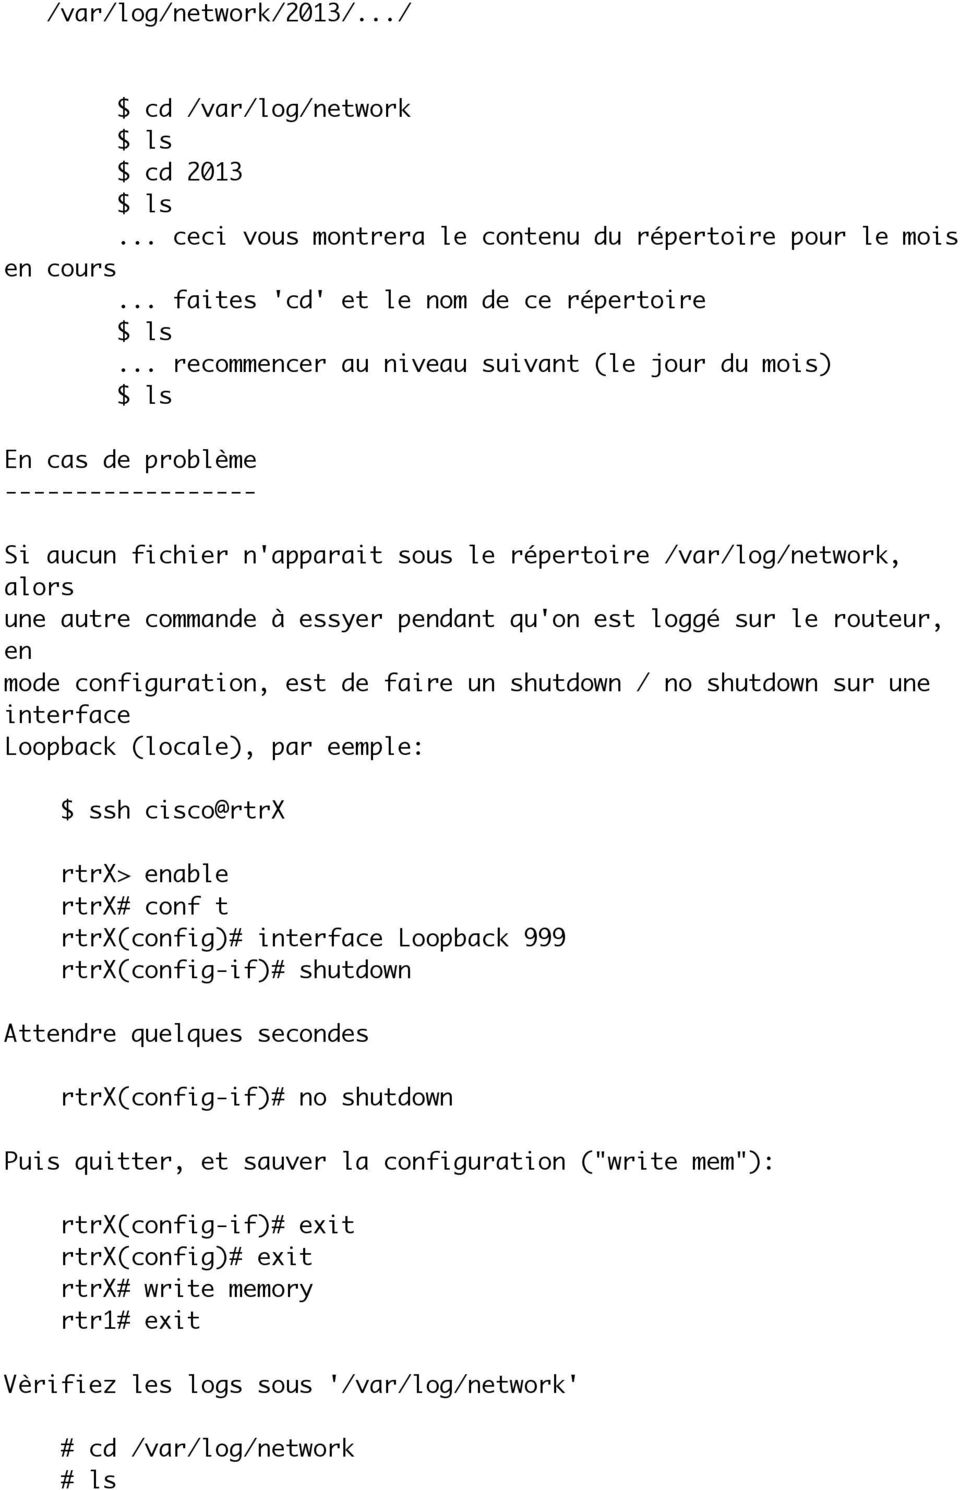 qu'on est loggé sur le routeur, en mode configuration, est de faire un shutdown / no shutdown sur une interface Loopback (locale), par eemple: $ ssh cisco@rtrx rtrx> enable rtrx# conf t rtrx(config)#